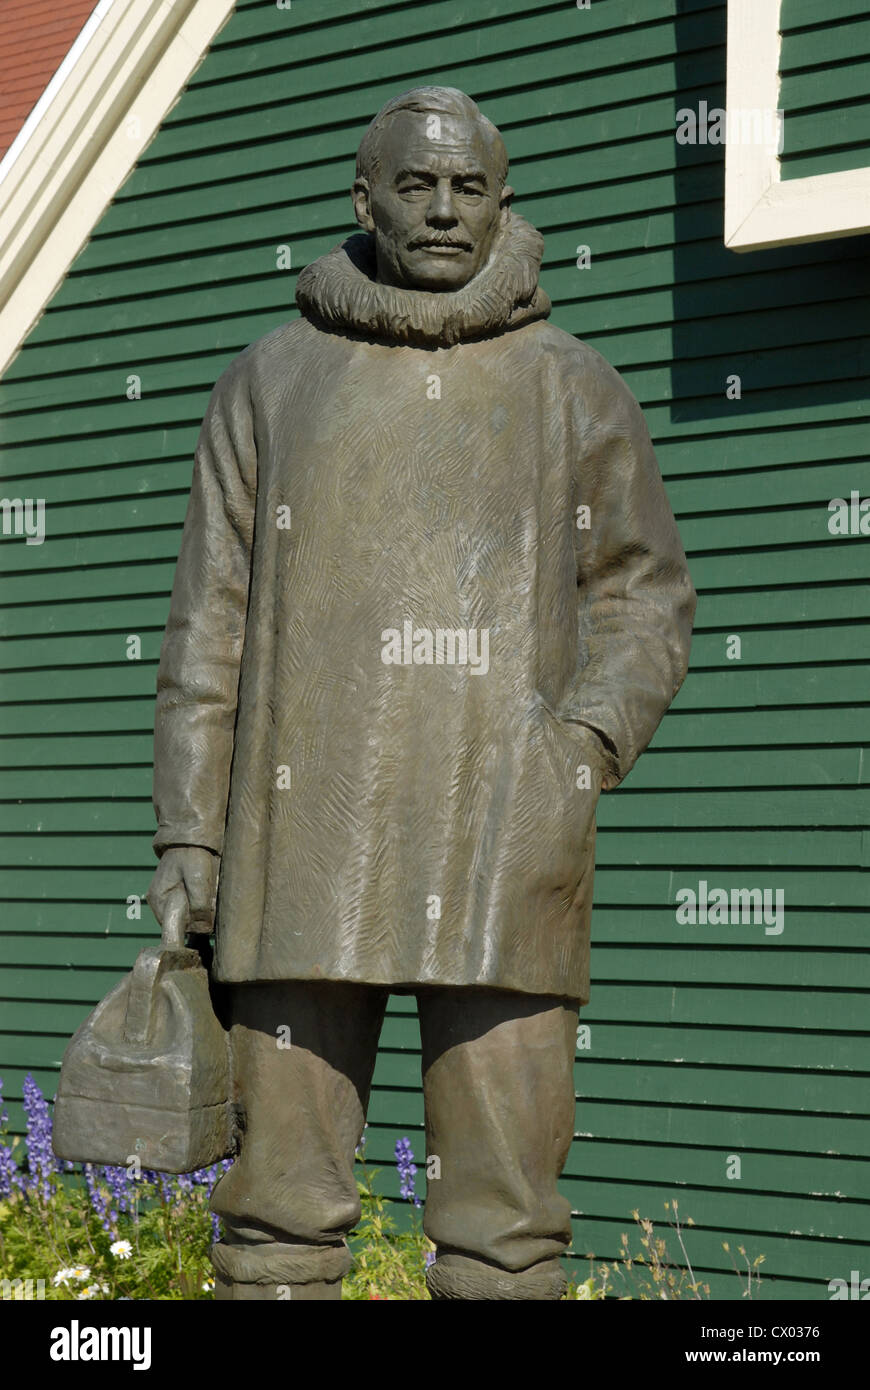 Statue of Dr Wilfred Grenfell outside the Grenfell Interpretation Centre, St Anthony, Newfoundland - Stock Image